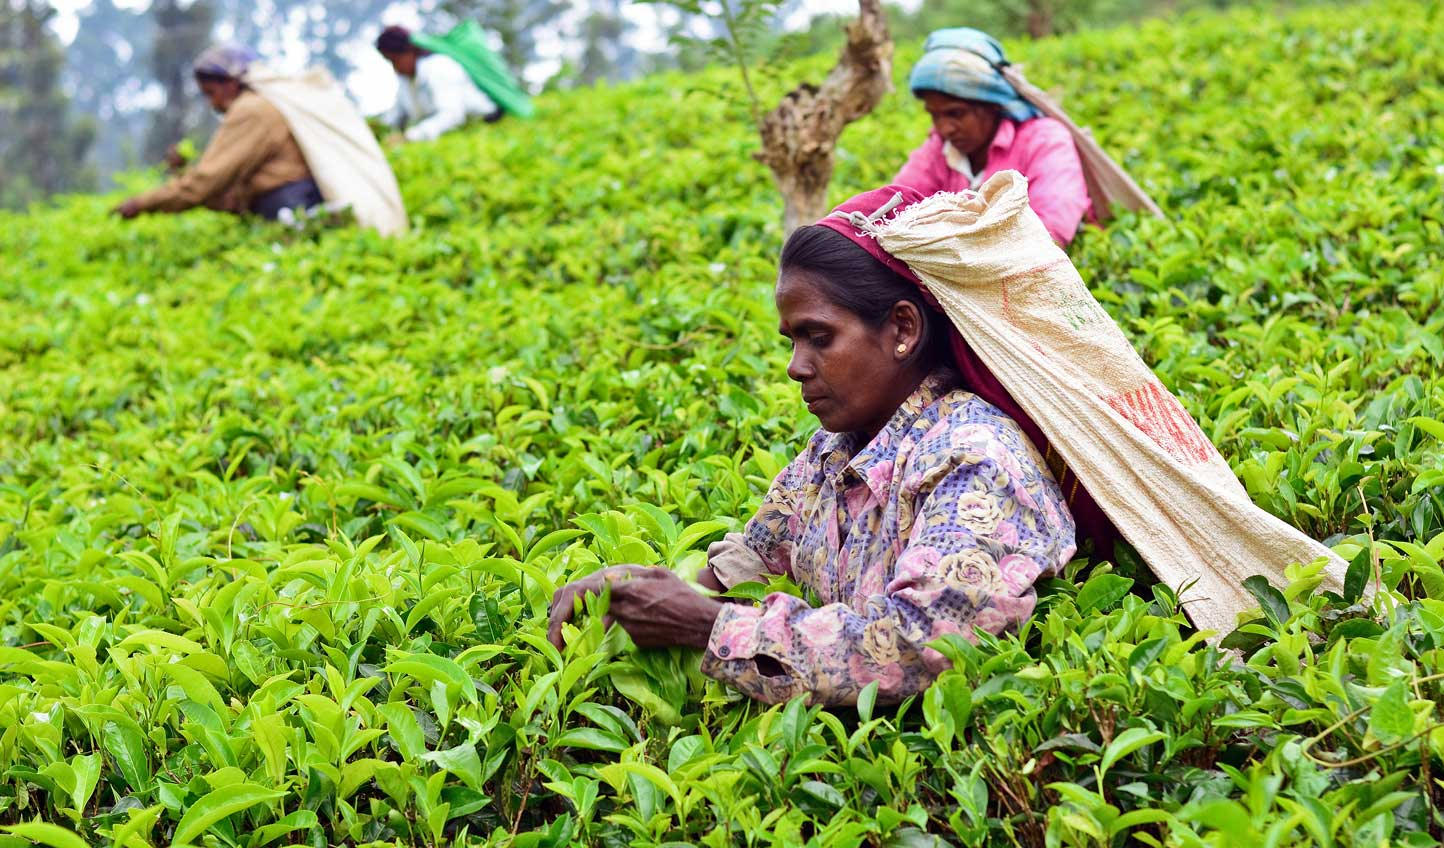 Join the women of Nuwara Eliya out in the tea fields